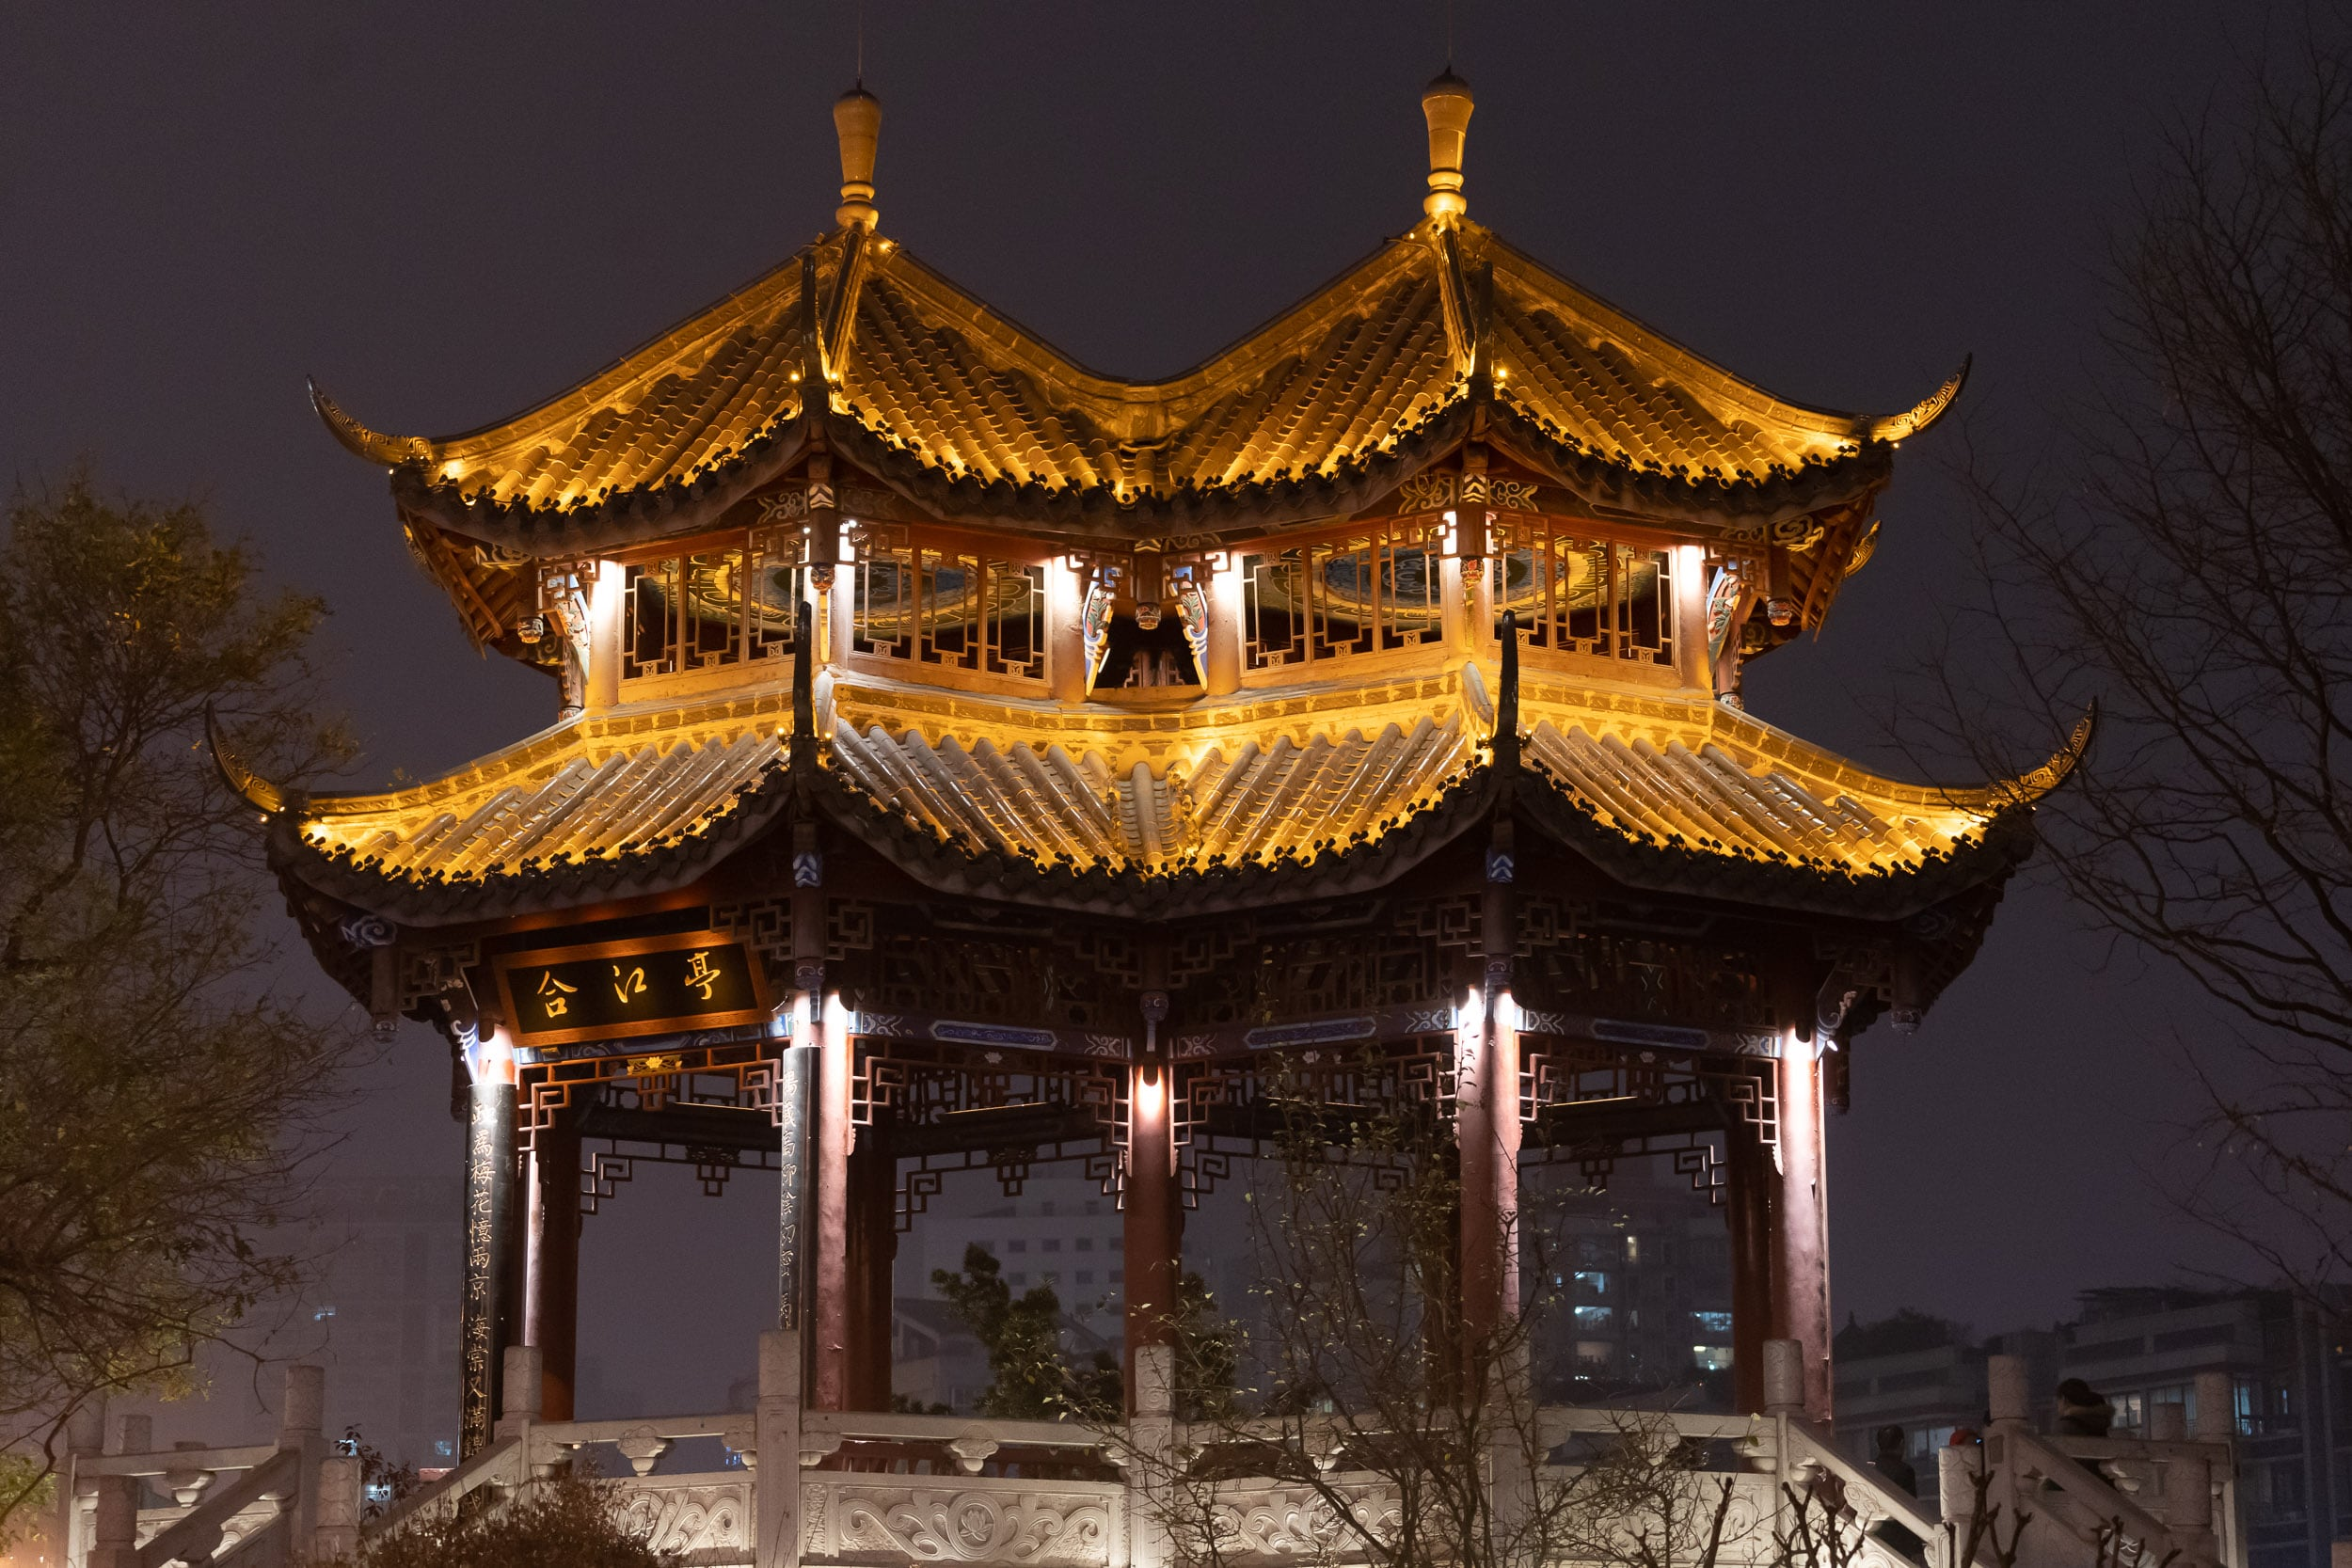 chinese architecture roof by night